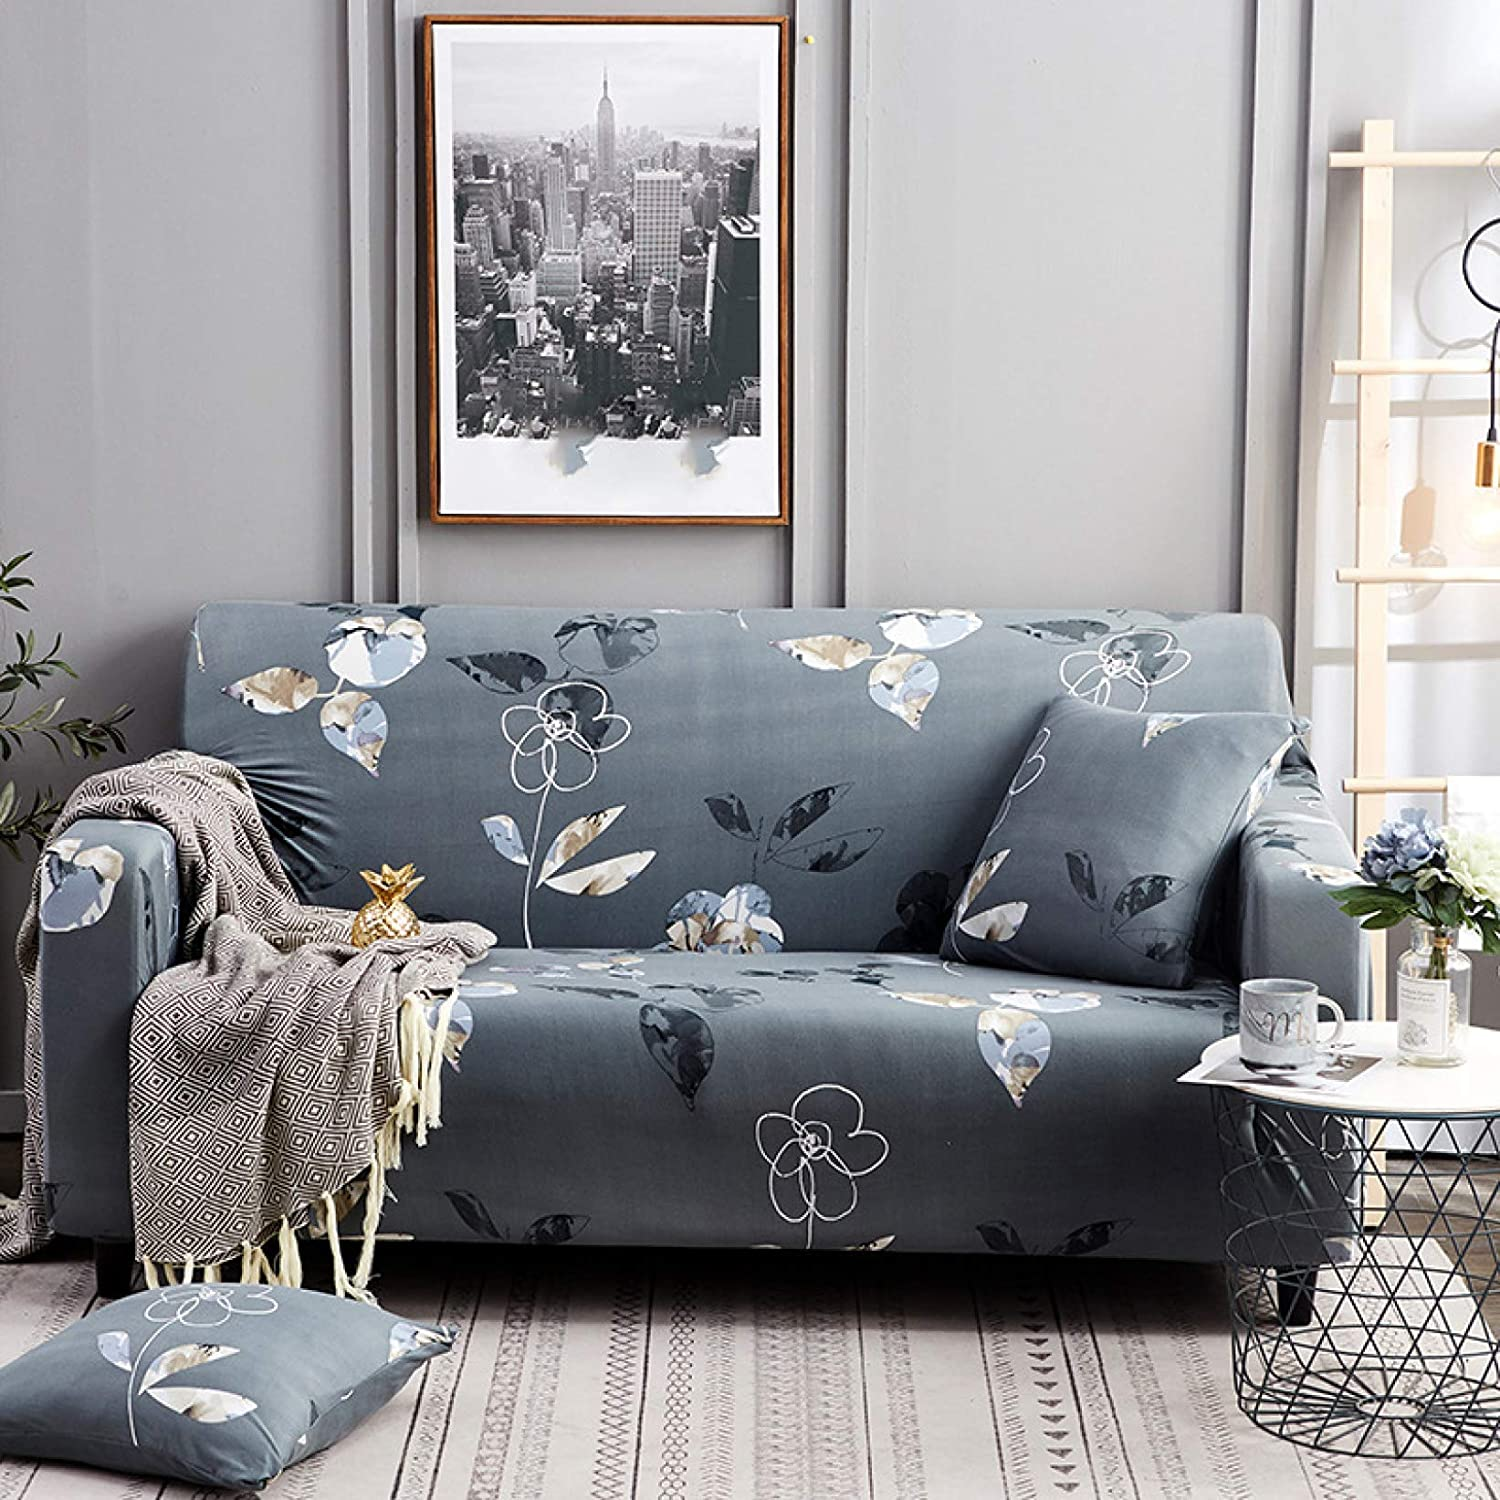 KKONION Stretch Loveseat Slipcover Furniture Protector Pet for Some reservation N OFFicial shop